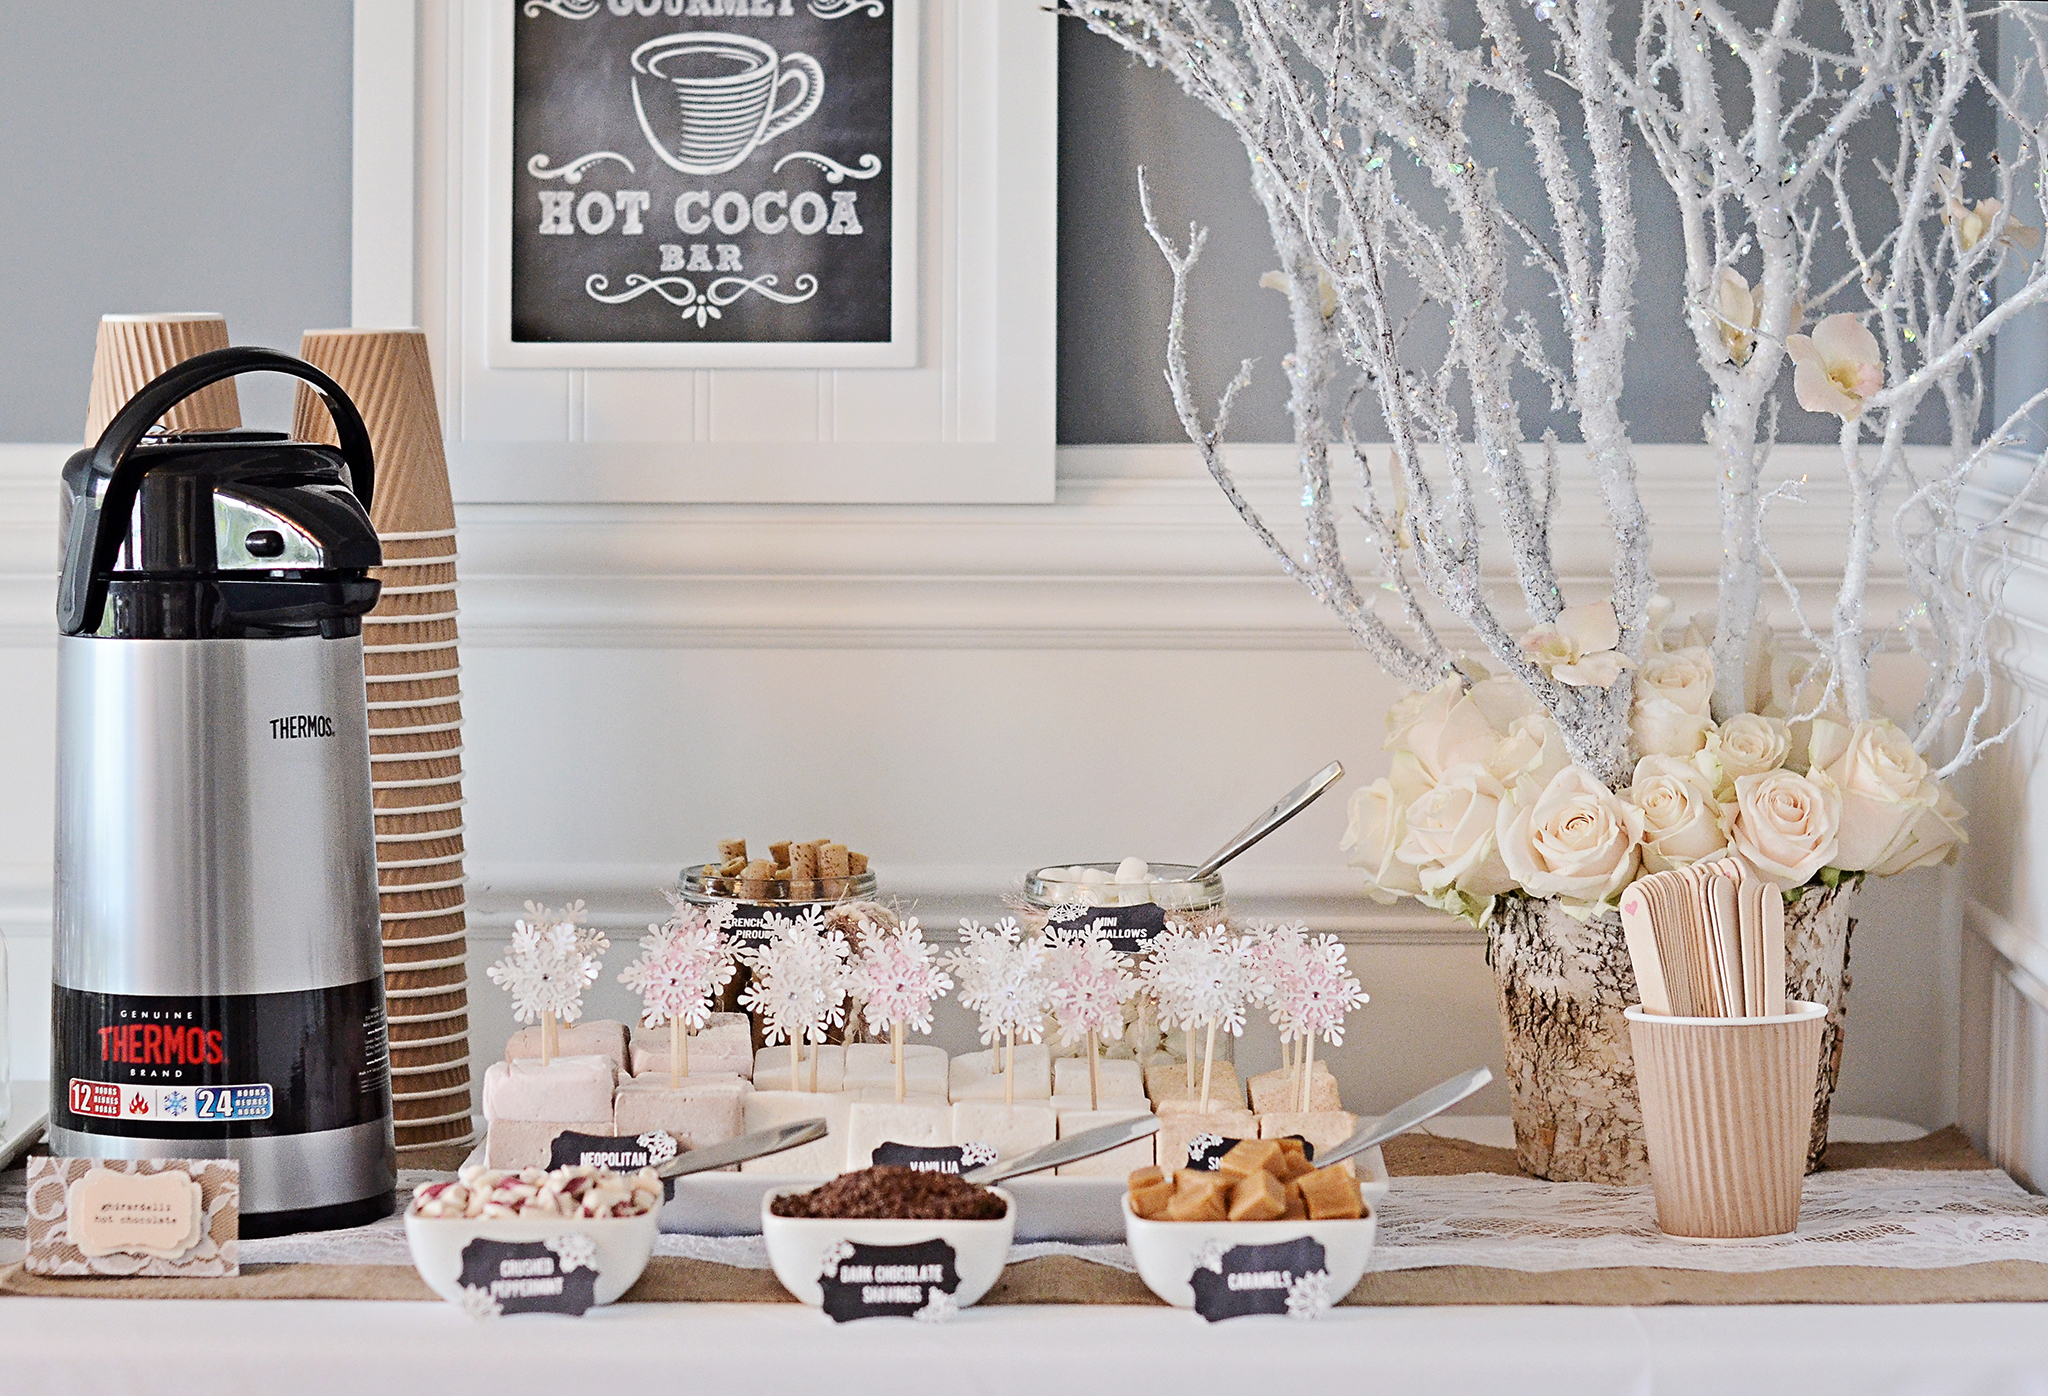 DIY Hot Cocoa Bar for Winter Wonderland Birthday Party